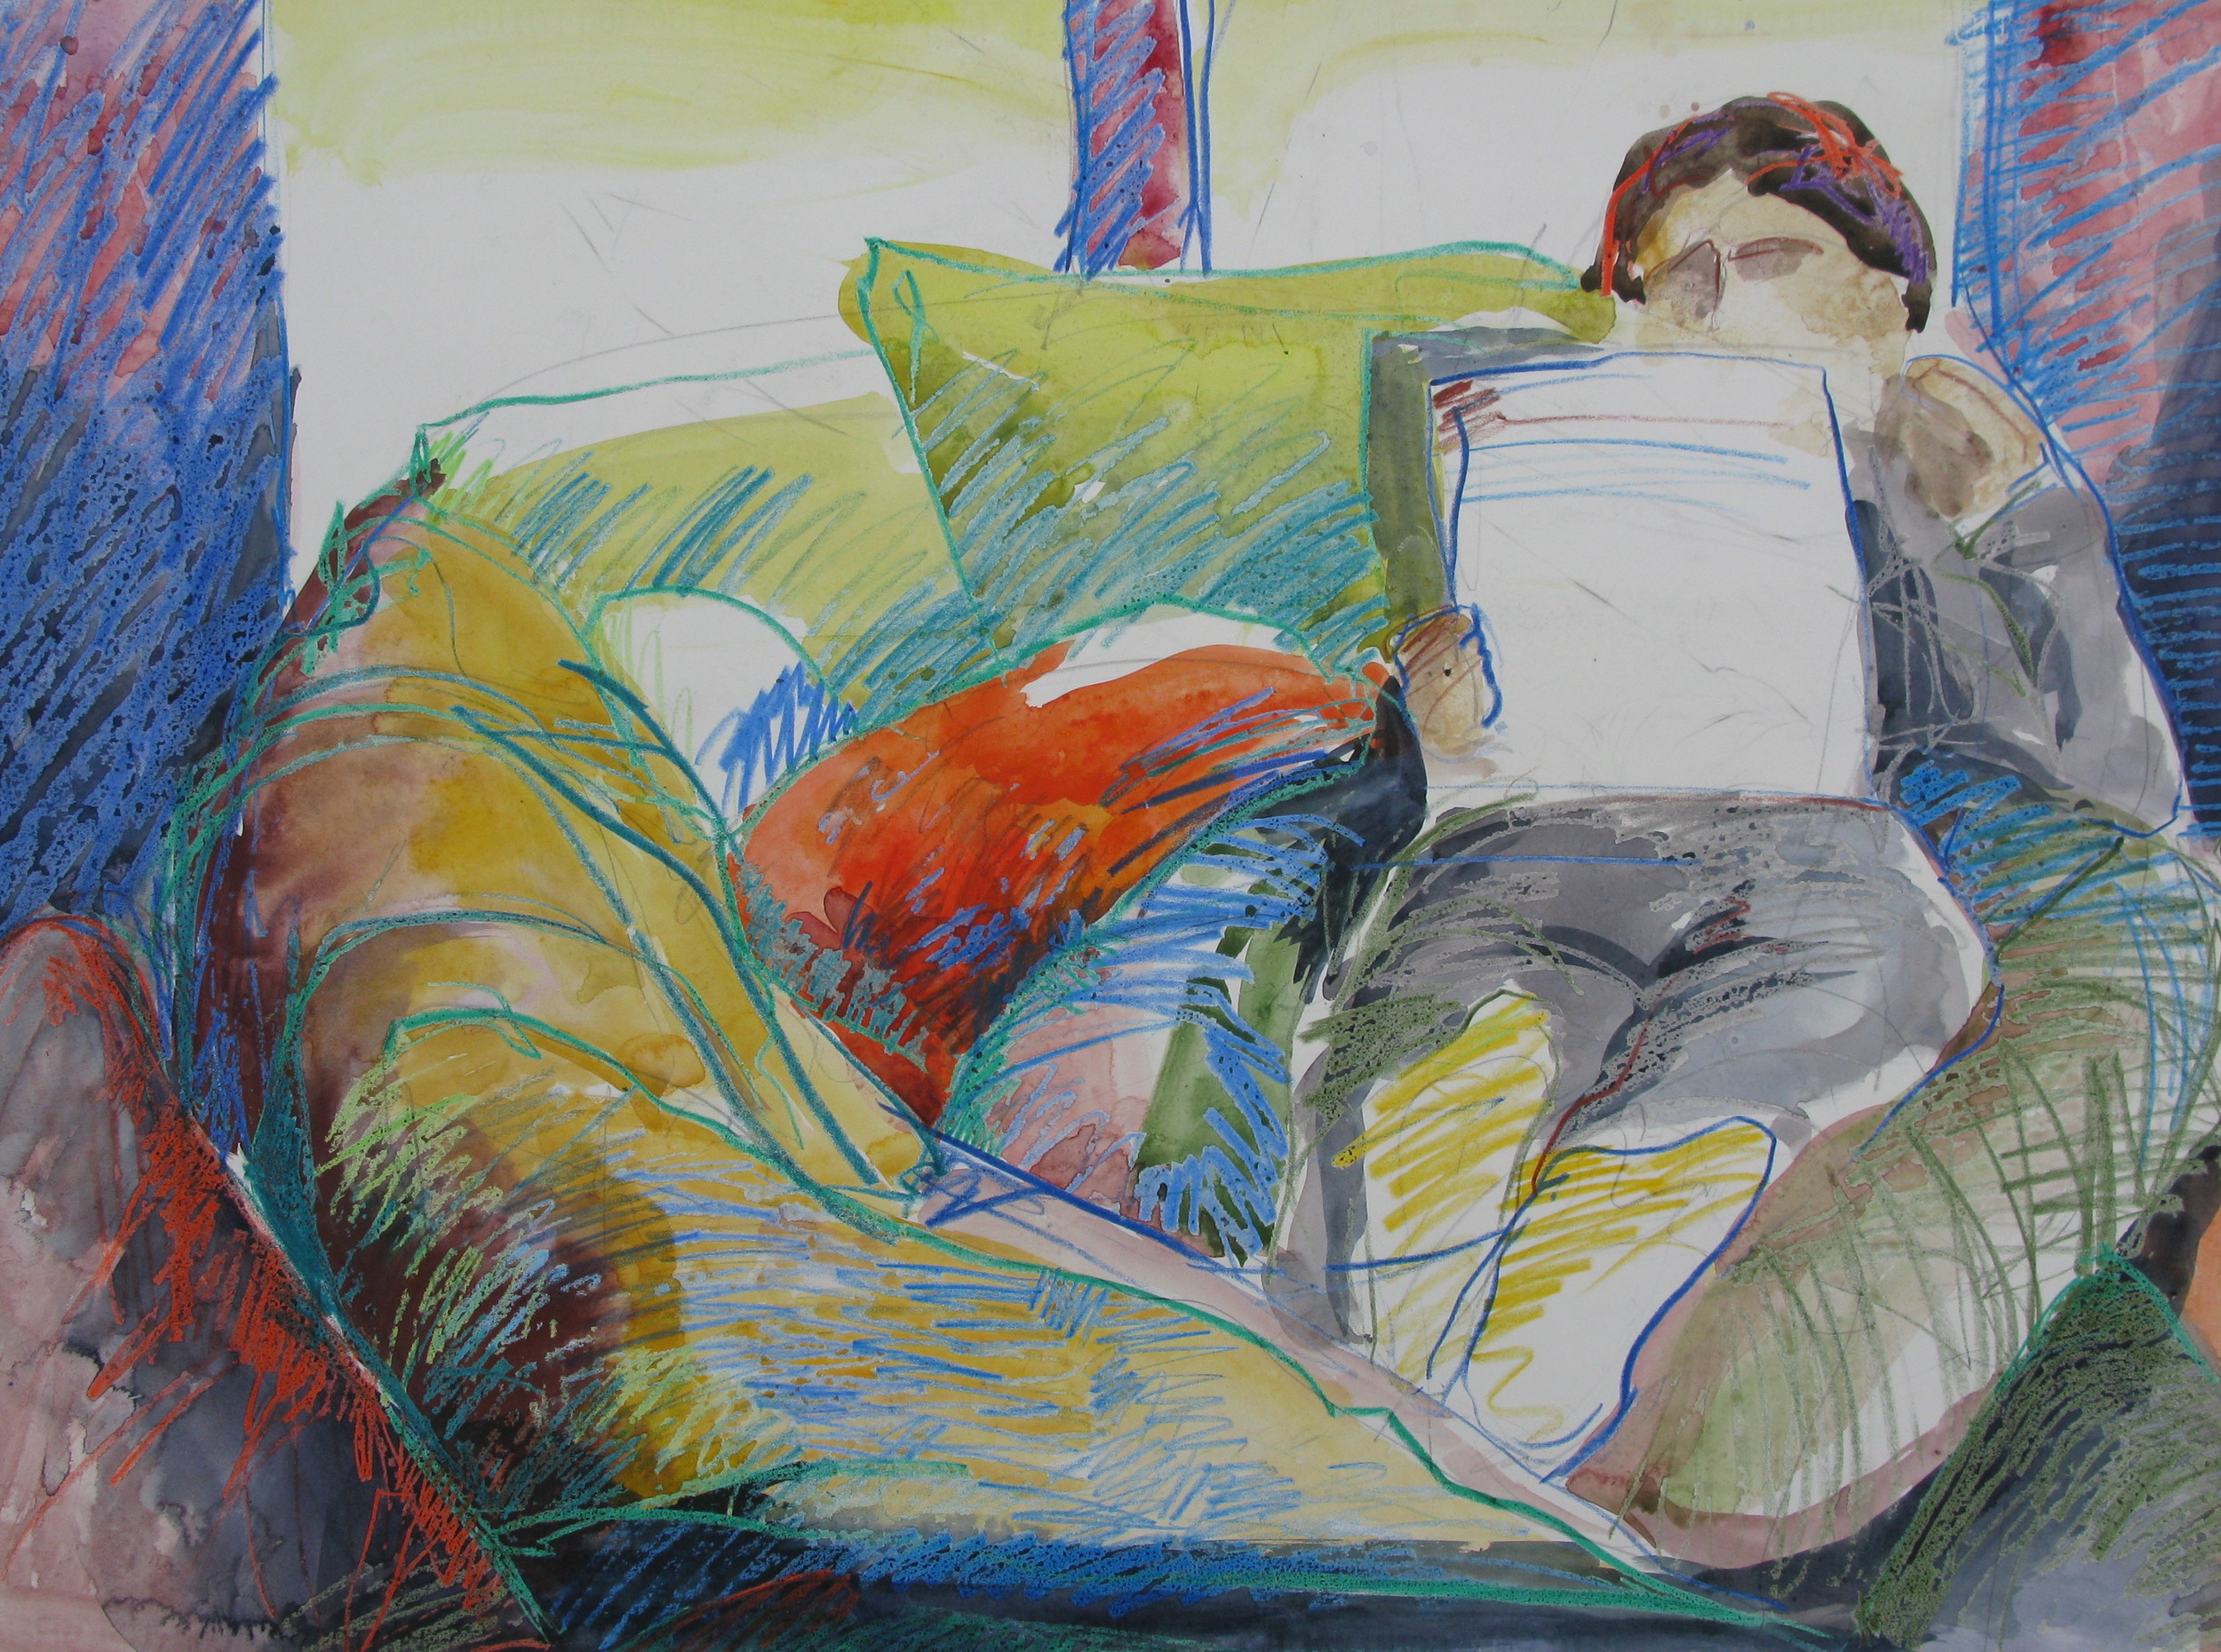 "editing in the afternoon     0791                   watercolor & beeswax             20"" x 30""  beth vendryes williams"